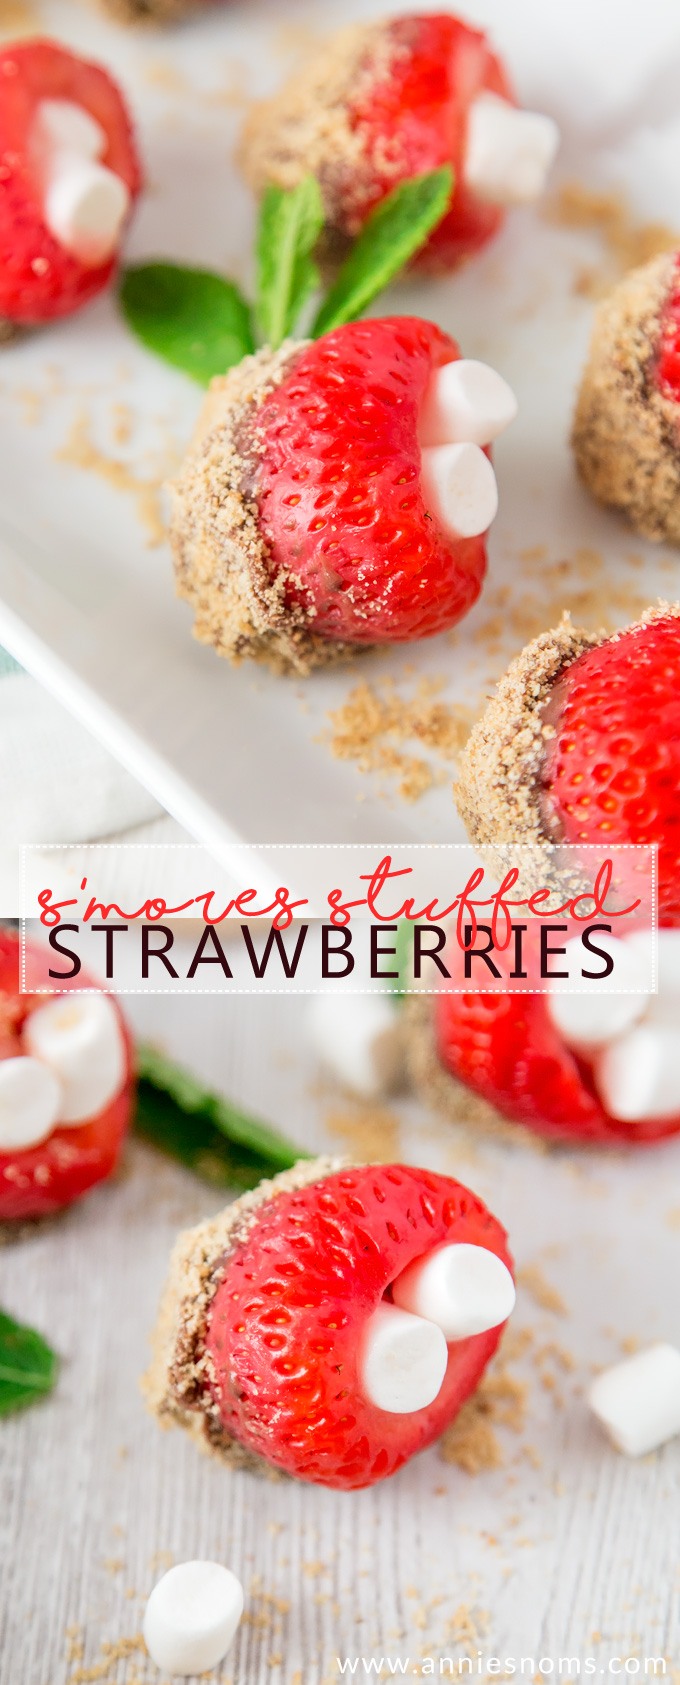 These S'mores Stuffed Strawberries might be bite sized, but they pack a real flavour punch! Sweet, chocolatey and a little crunchy; these treats are completely addictive!